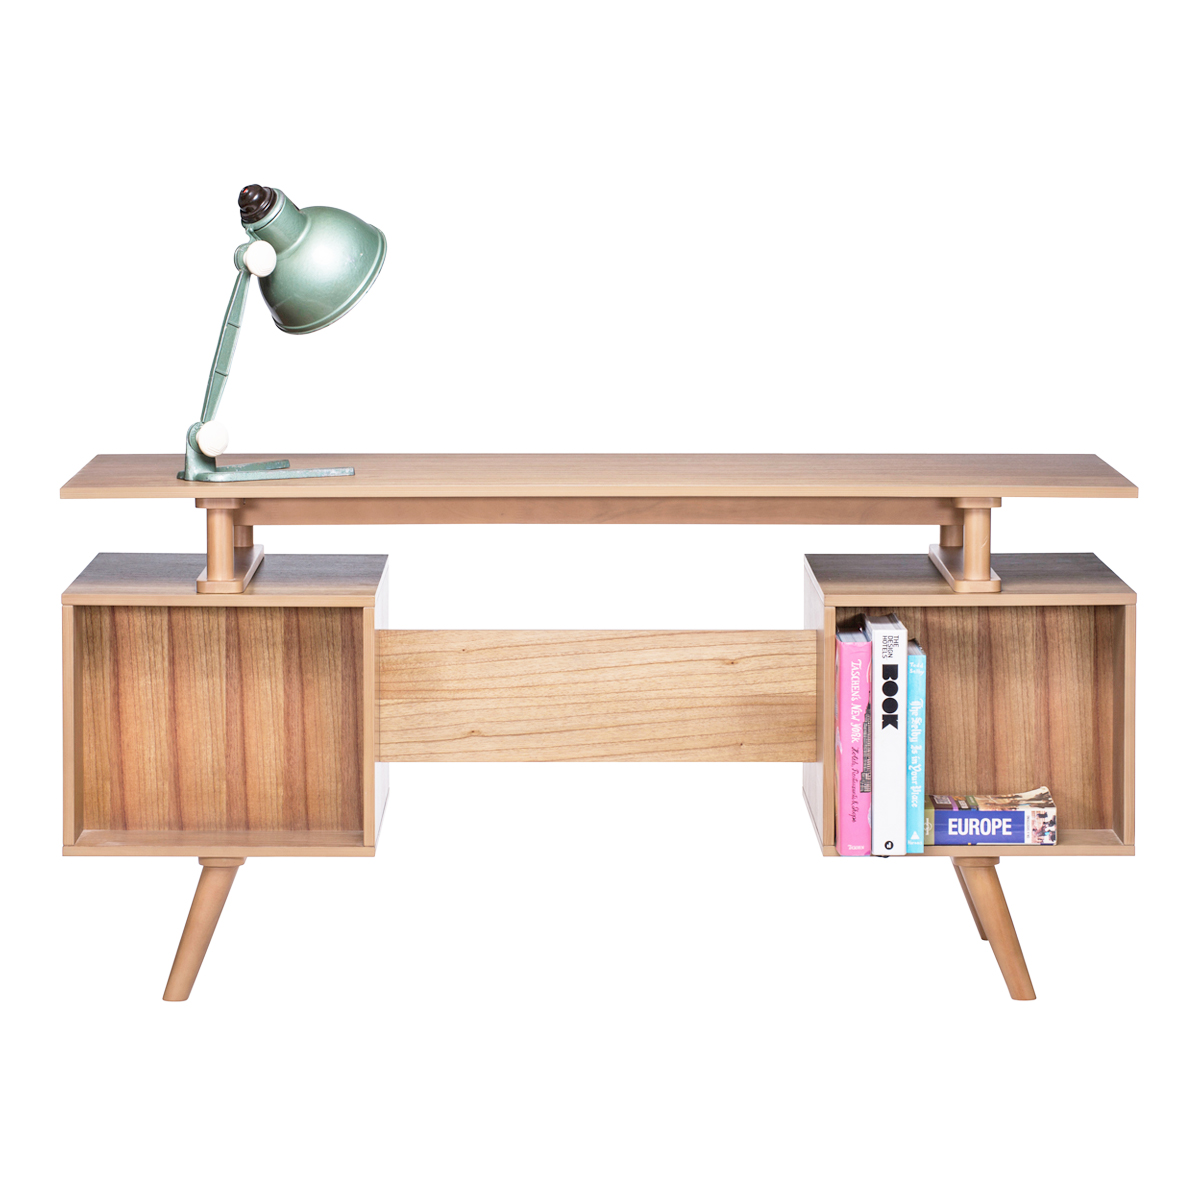 scandinavian office furniture scandinavian furniture chairs bathroomcomely office max furniture desk